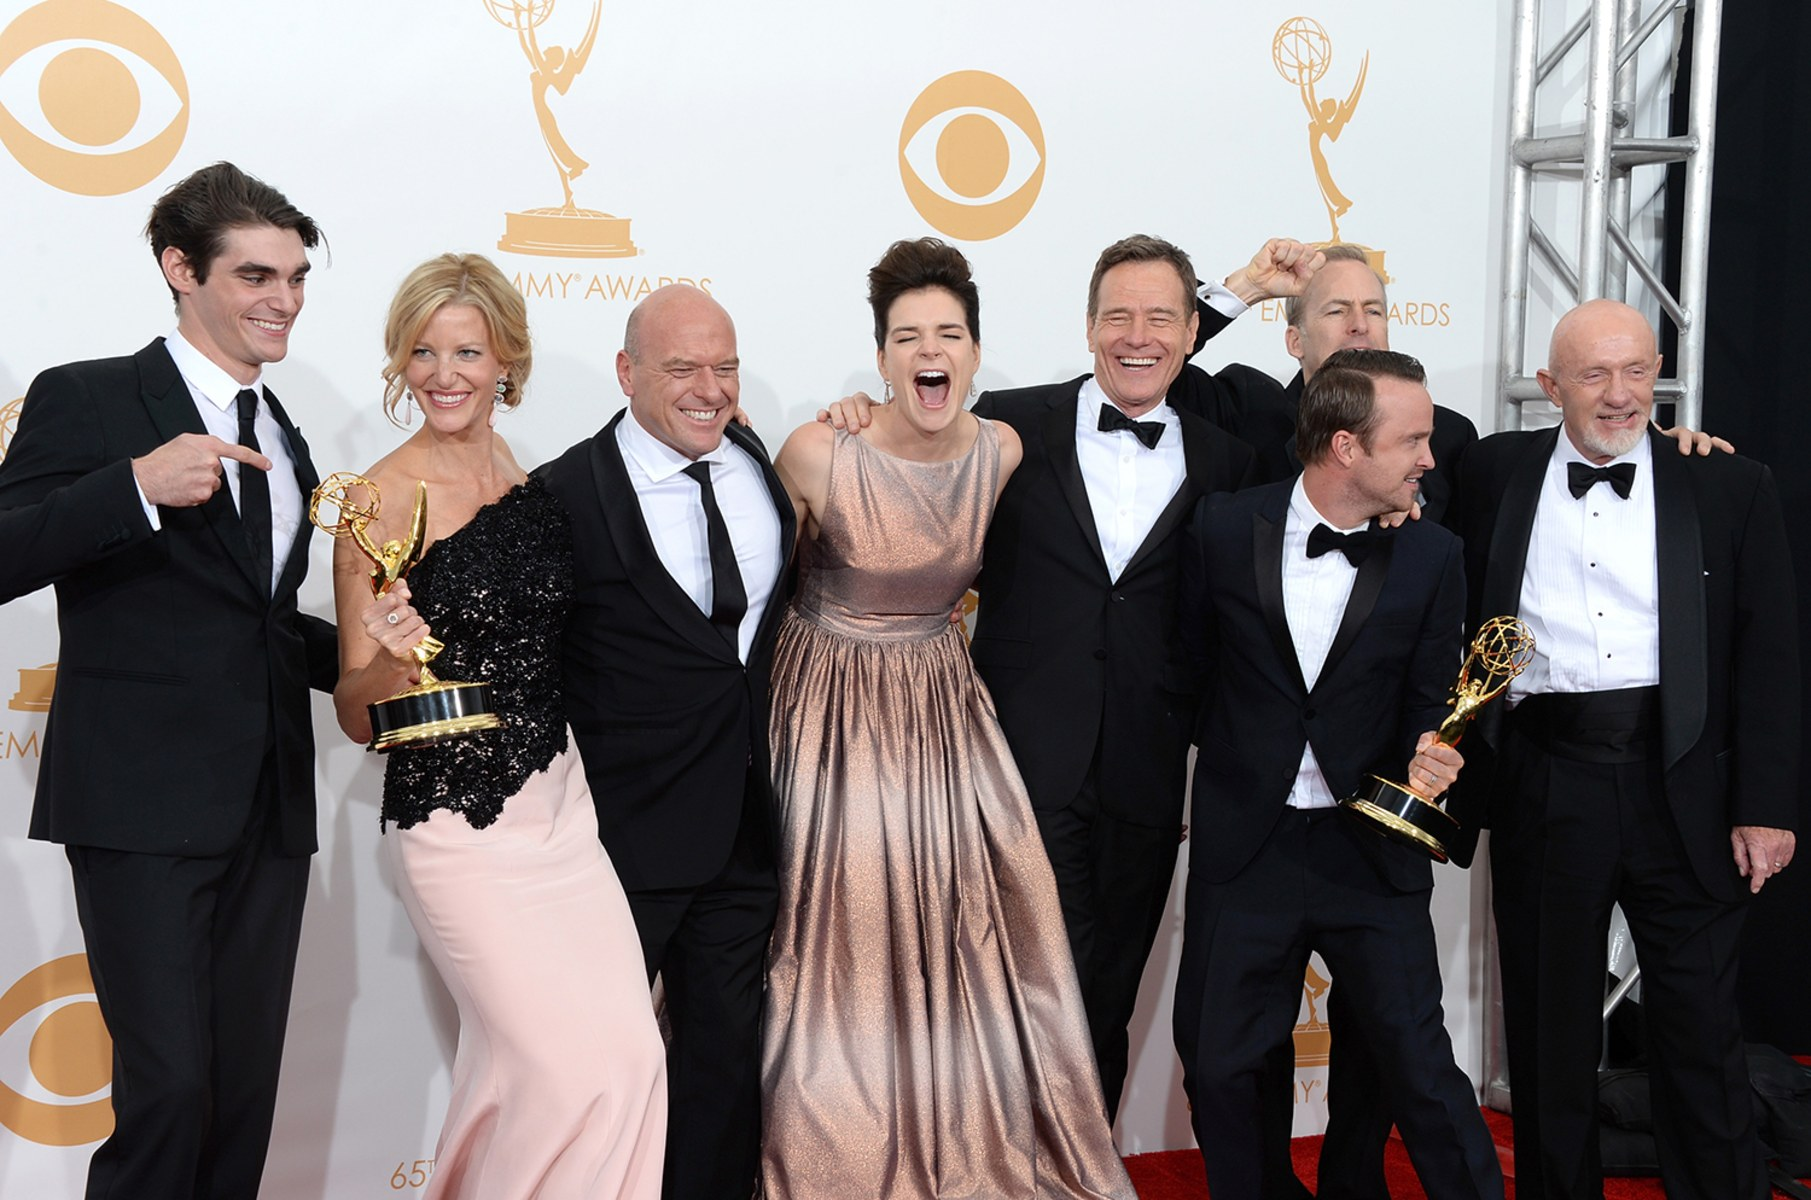 Image: 65th Annual Primetime Emmy Awards - Press Room